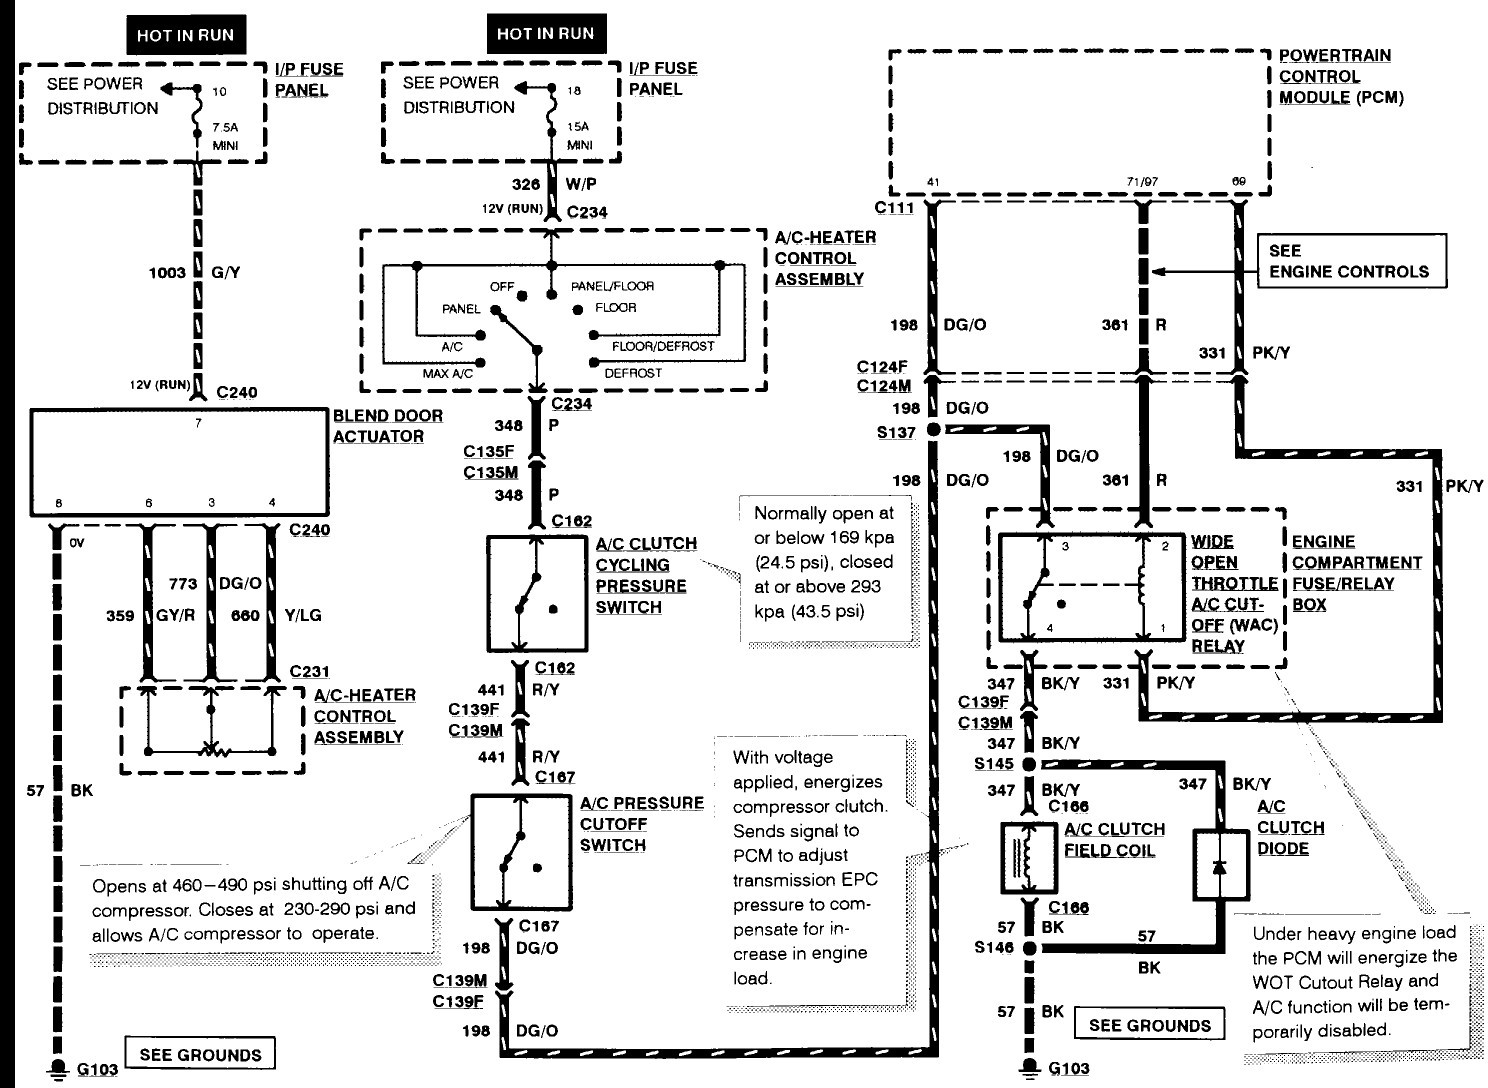 hight resolution of turn signal wireing electrical 12 volt vcca chat book diagram schema wiring diagram for signal stat 900 manual engine schematics and